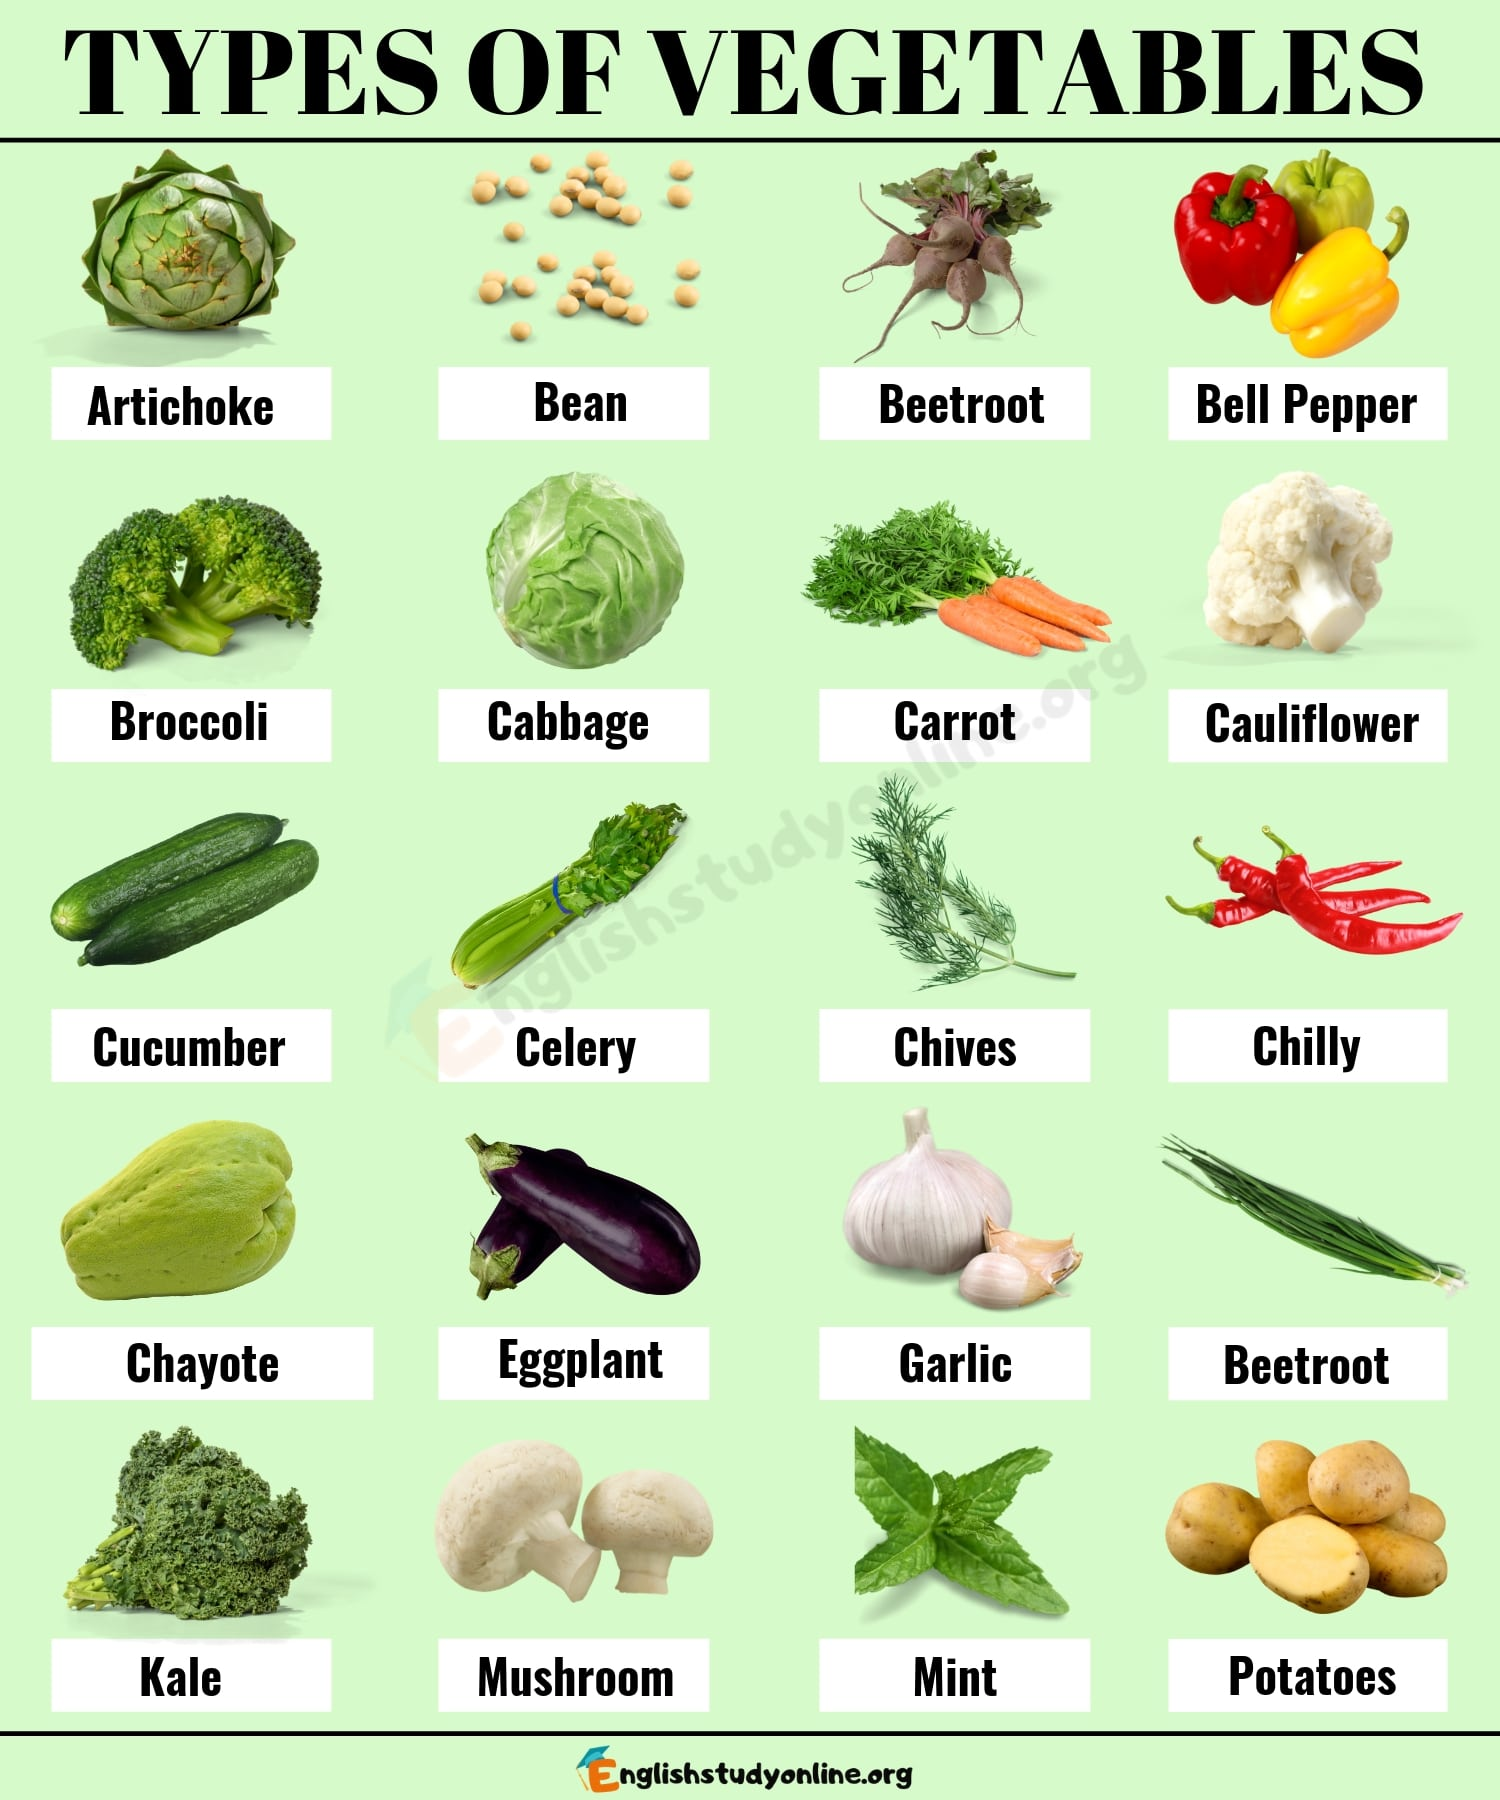 Types of Vegetables